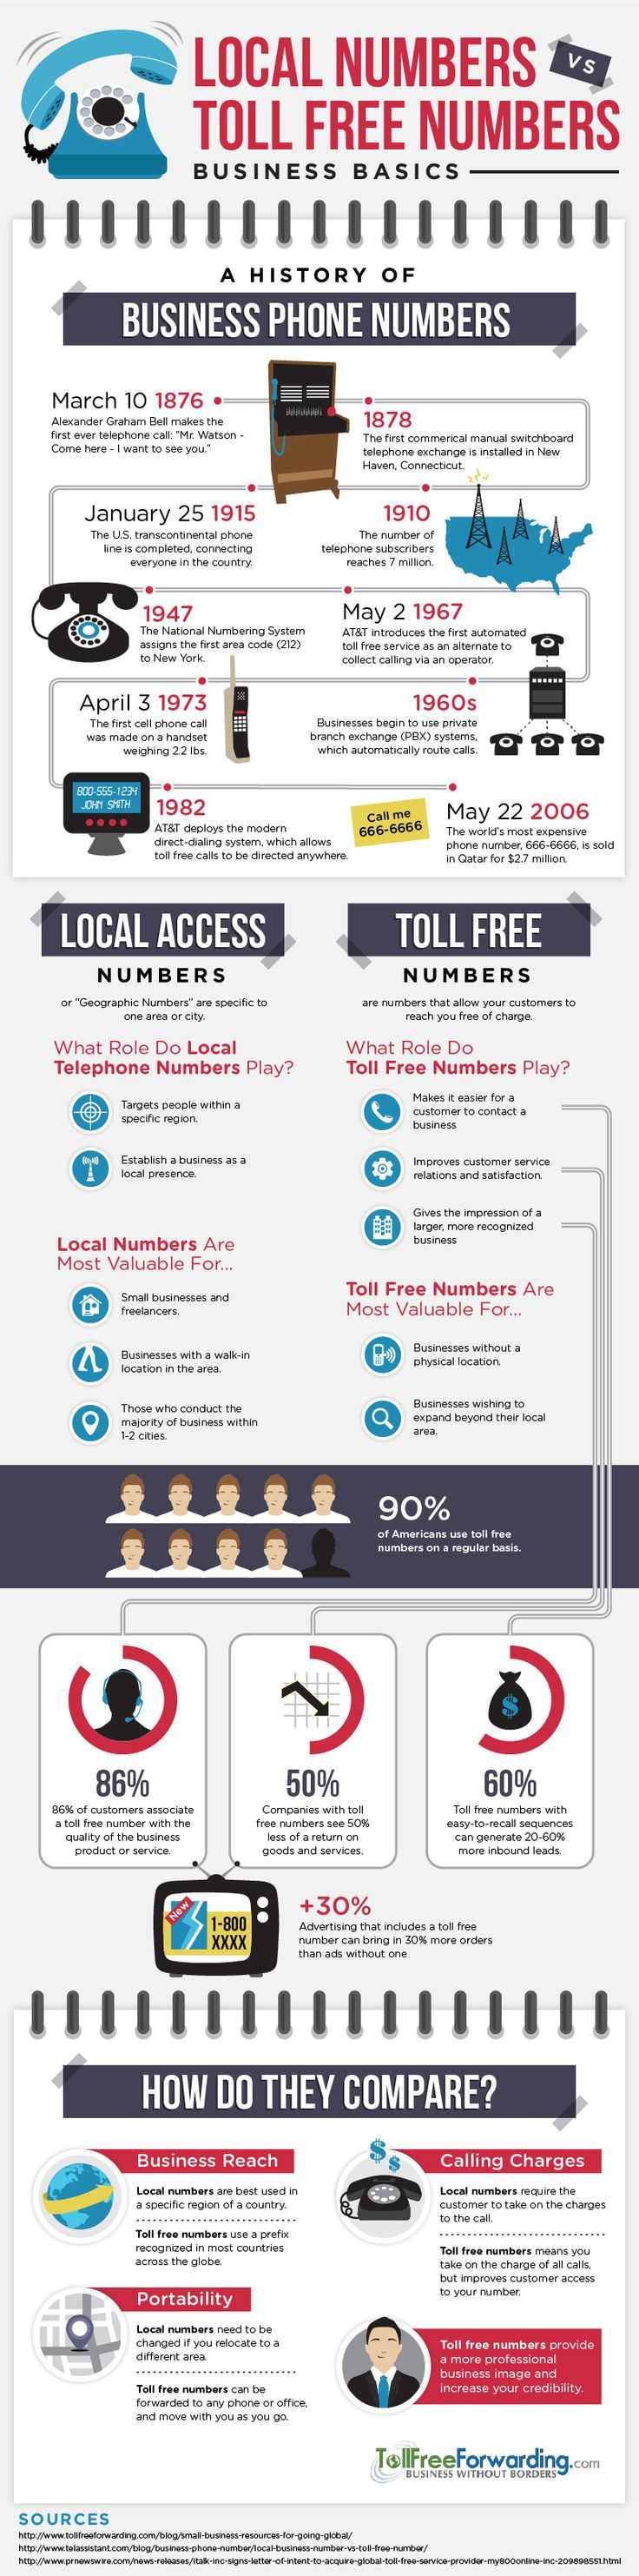 This infographic explores the history of business phone numbers, as well as  the benefits and differences between local and toll free numbers.